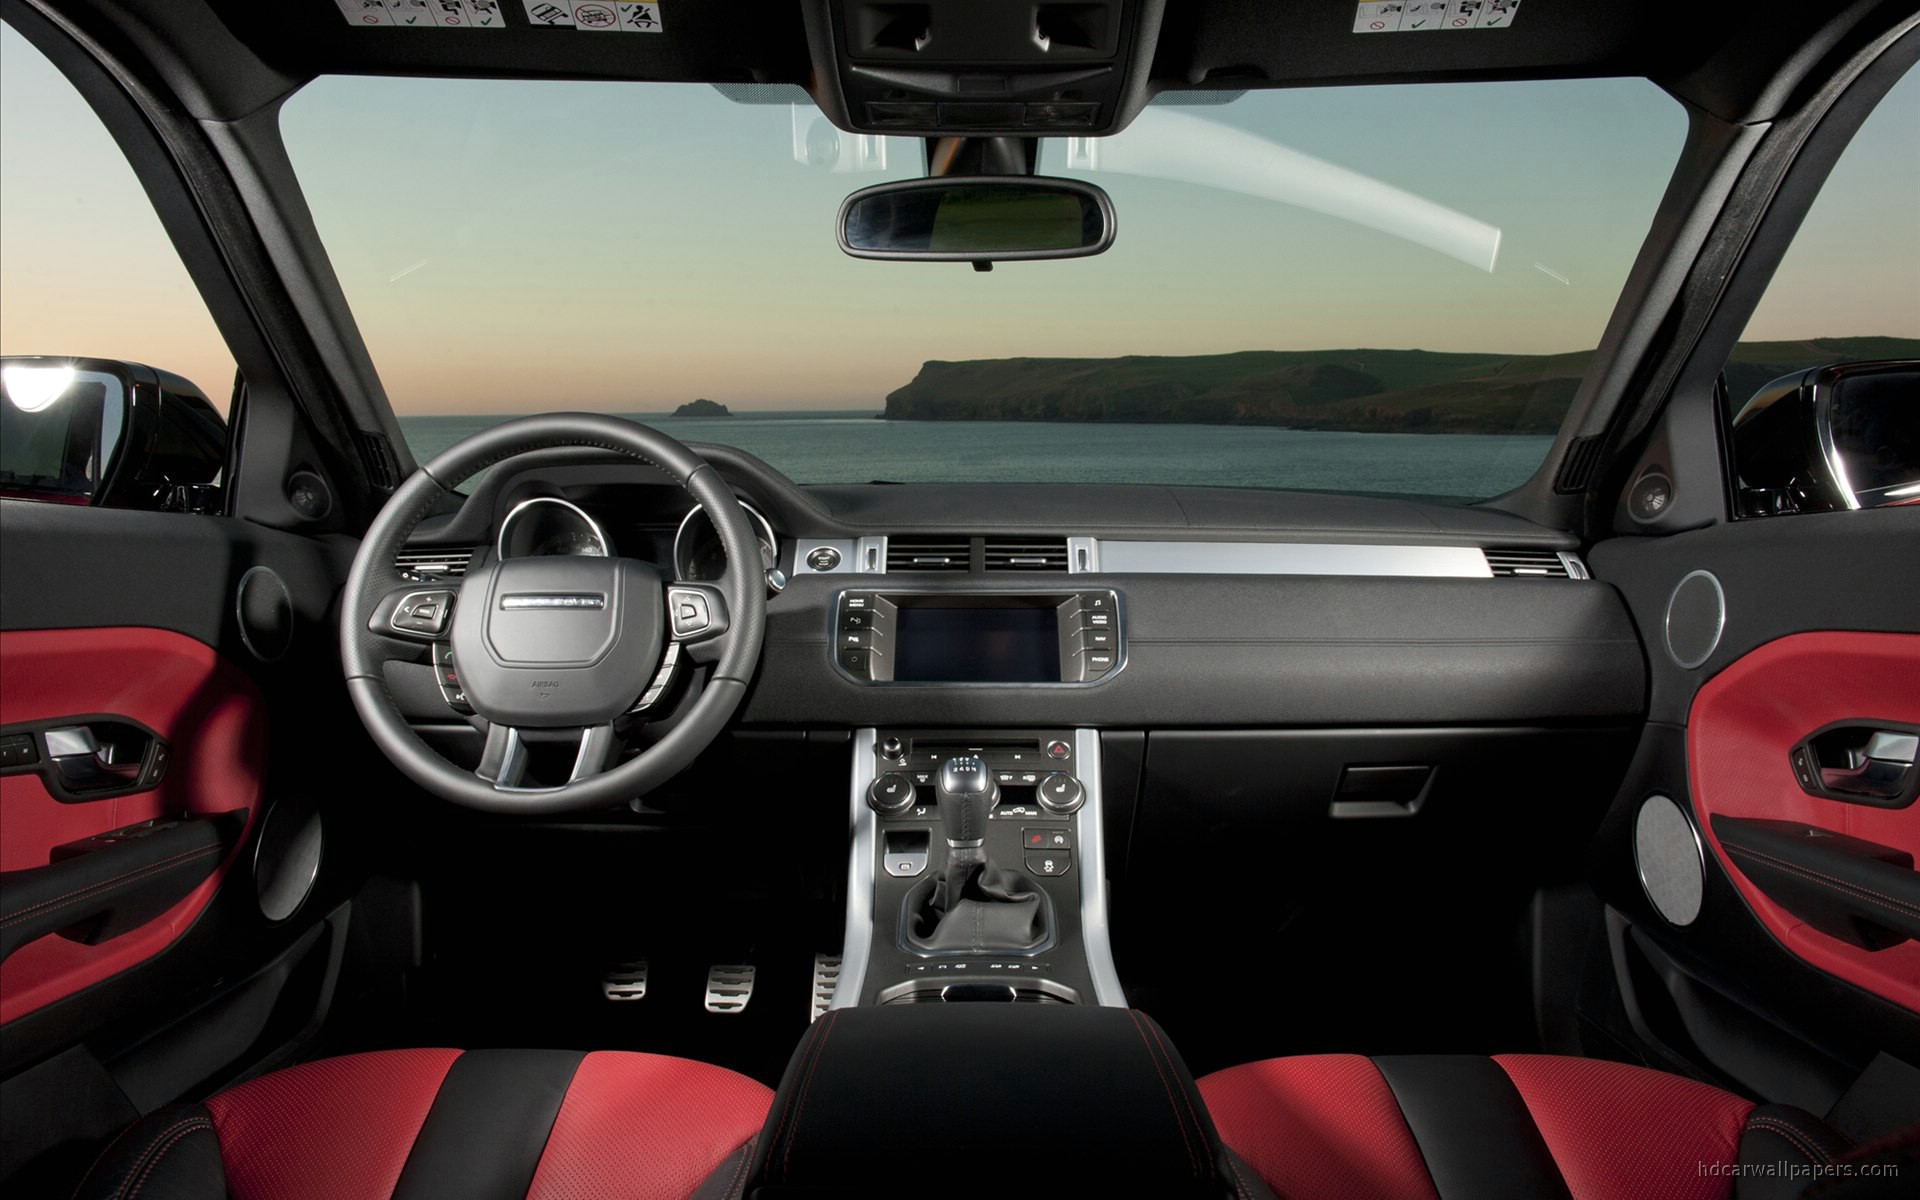 range rover evoque 5 door interior wallpaper hd car wallpapers id 1859. Black Bedroom Furniture Sets. Home Design Ideas